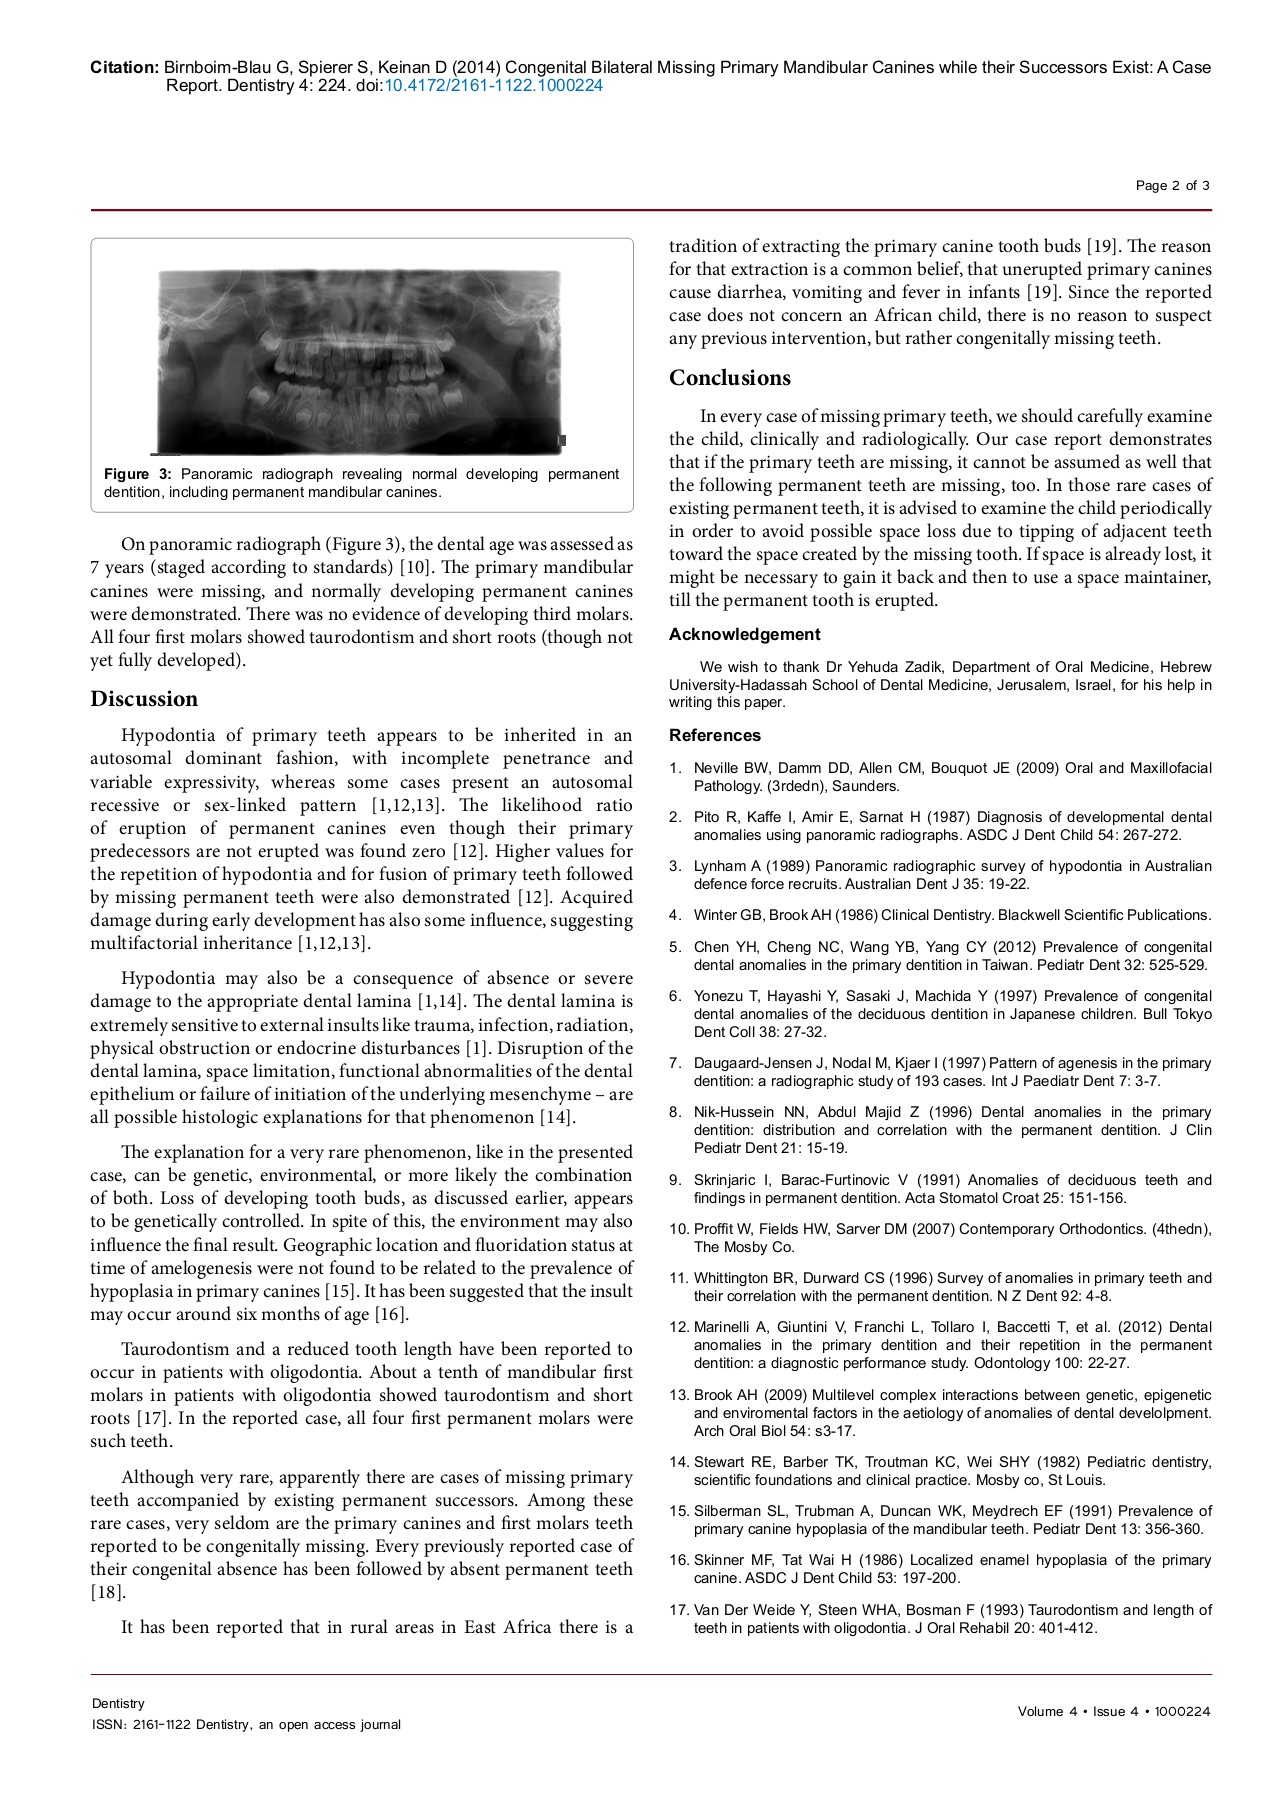 Congenital Bilateral Missing Primary Mandibular Canines     Pages 1